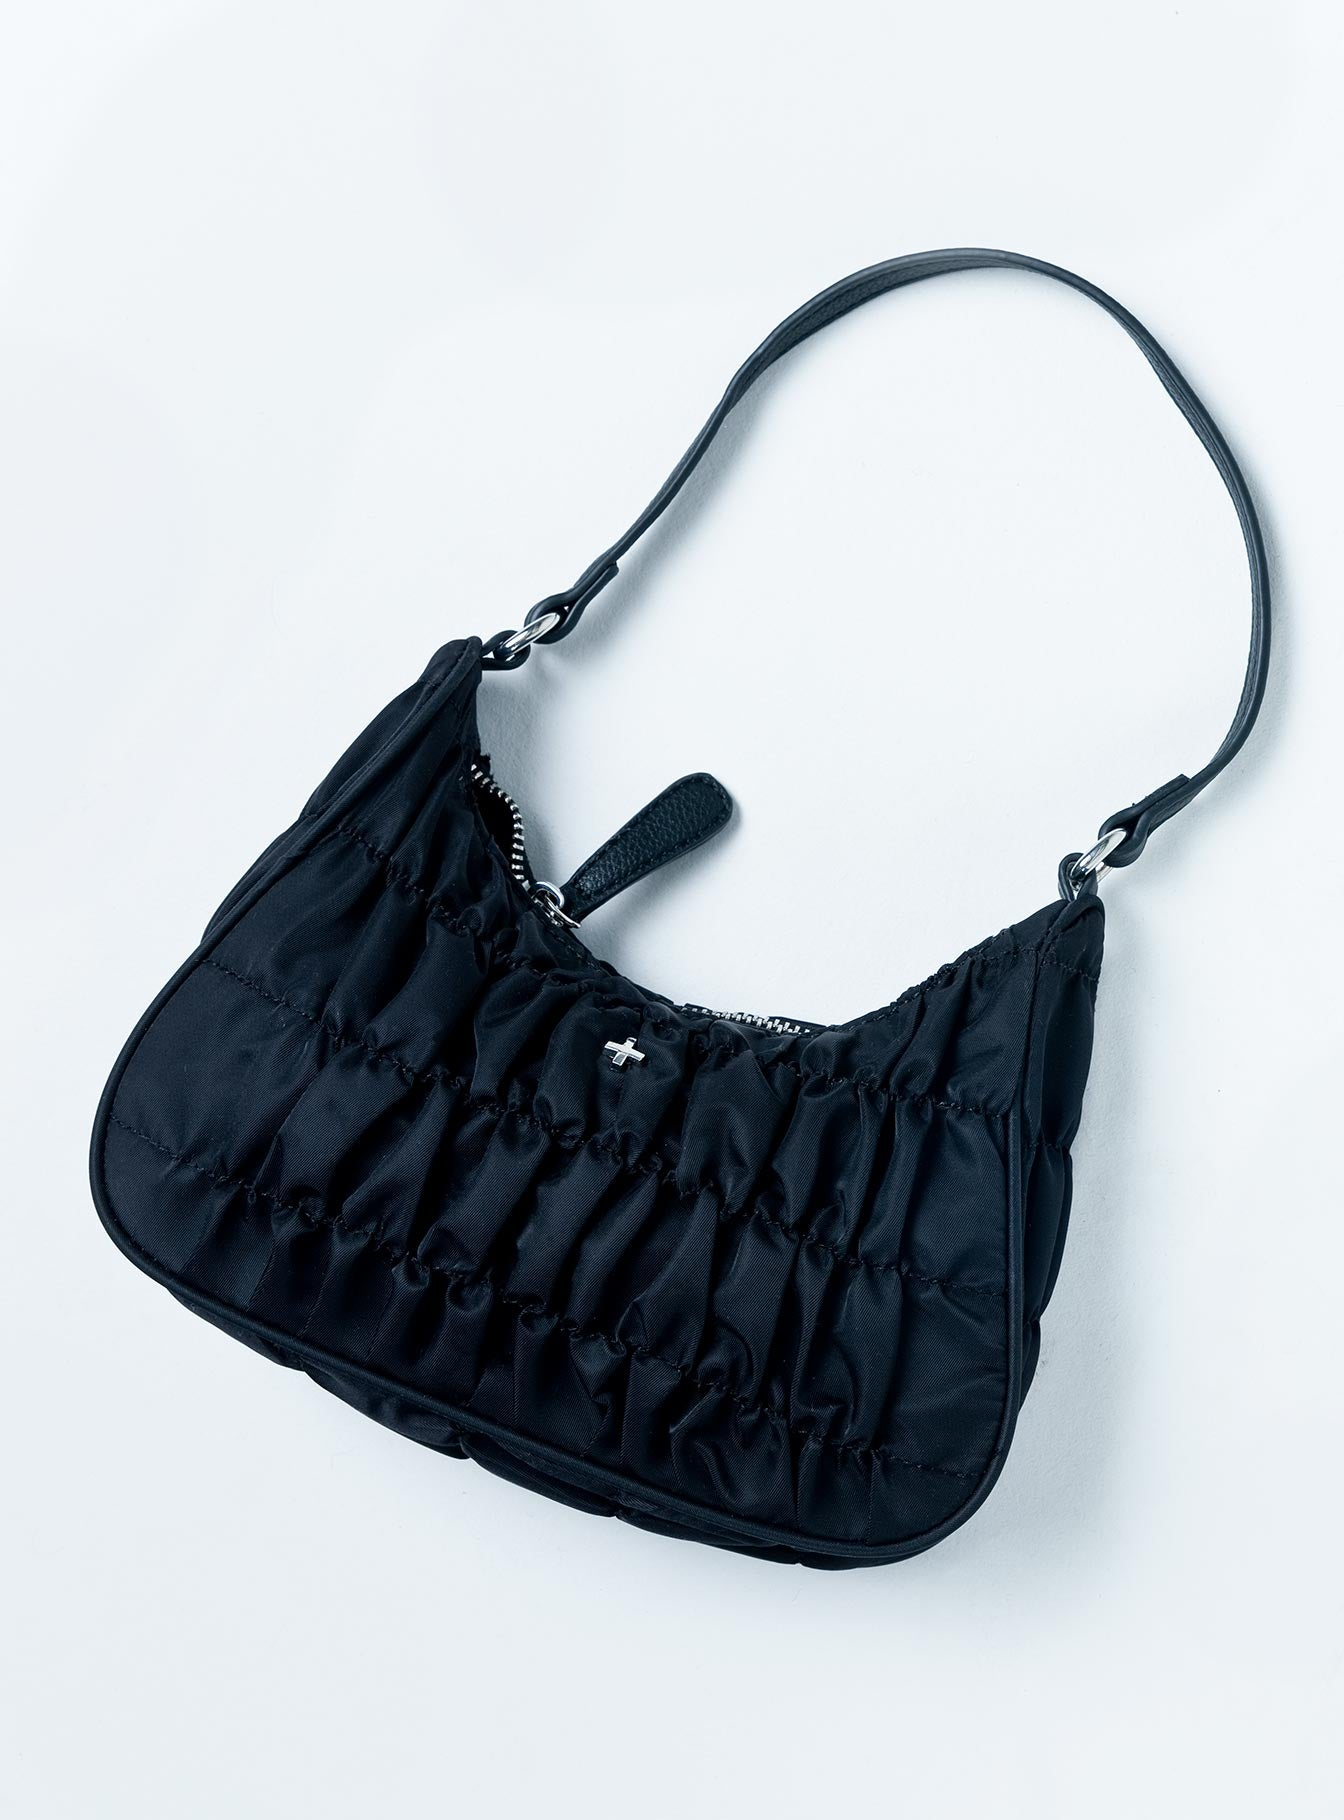 Peta & Jain Tyra Bag Black